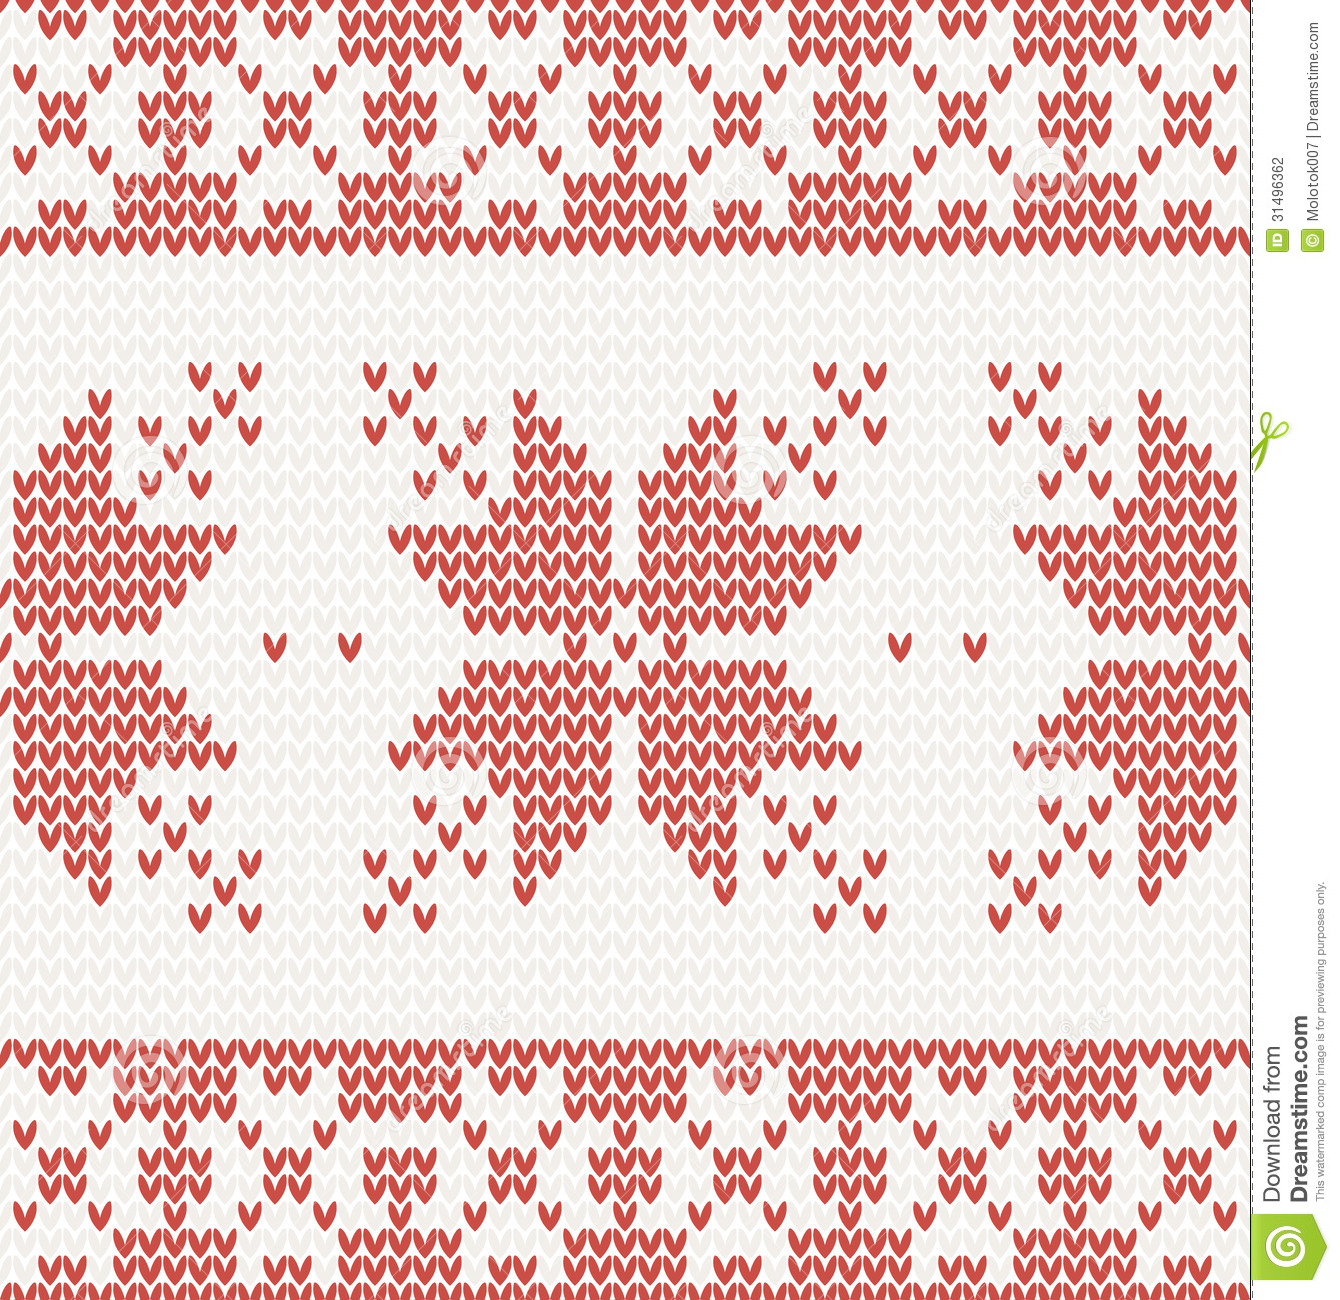 Knitted Christmas Patterns : Seamless Knitted Pattern With Christmas Ornament Stock Photography - Image: 3...